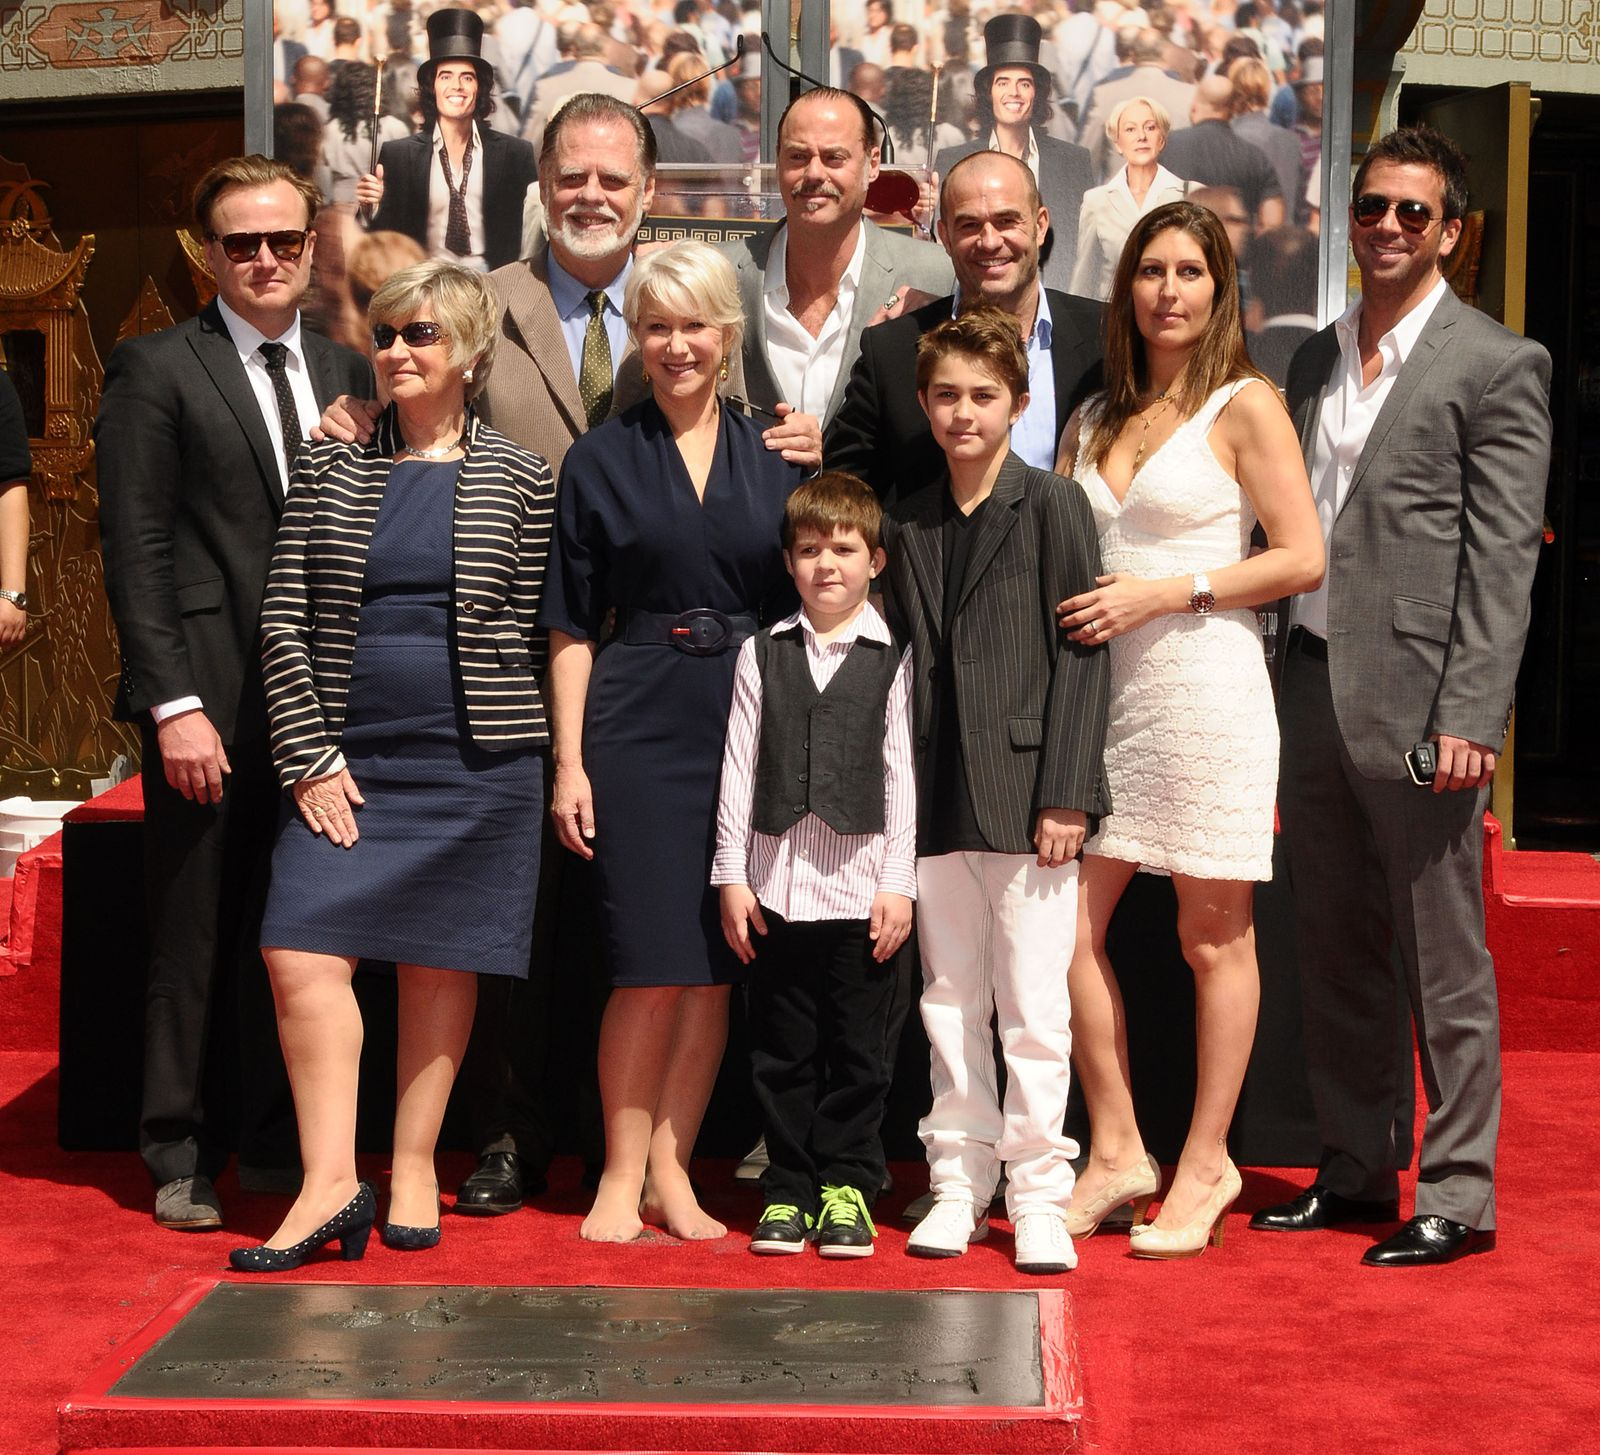 Helen Mirren Hand And Footprint Ceremony At Grauman's Chinese Theatre